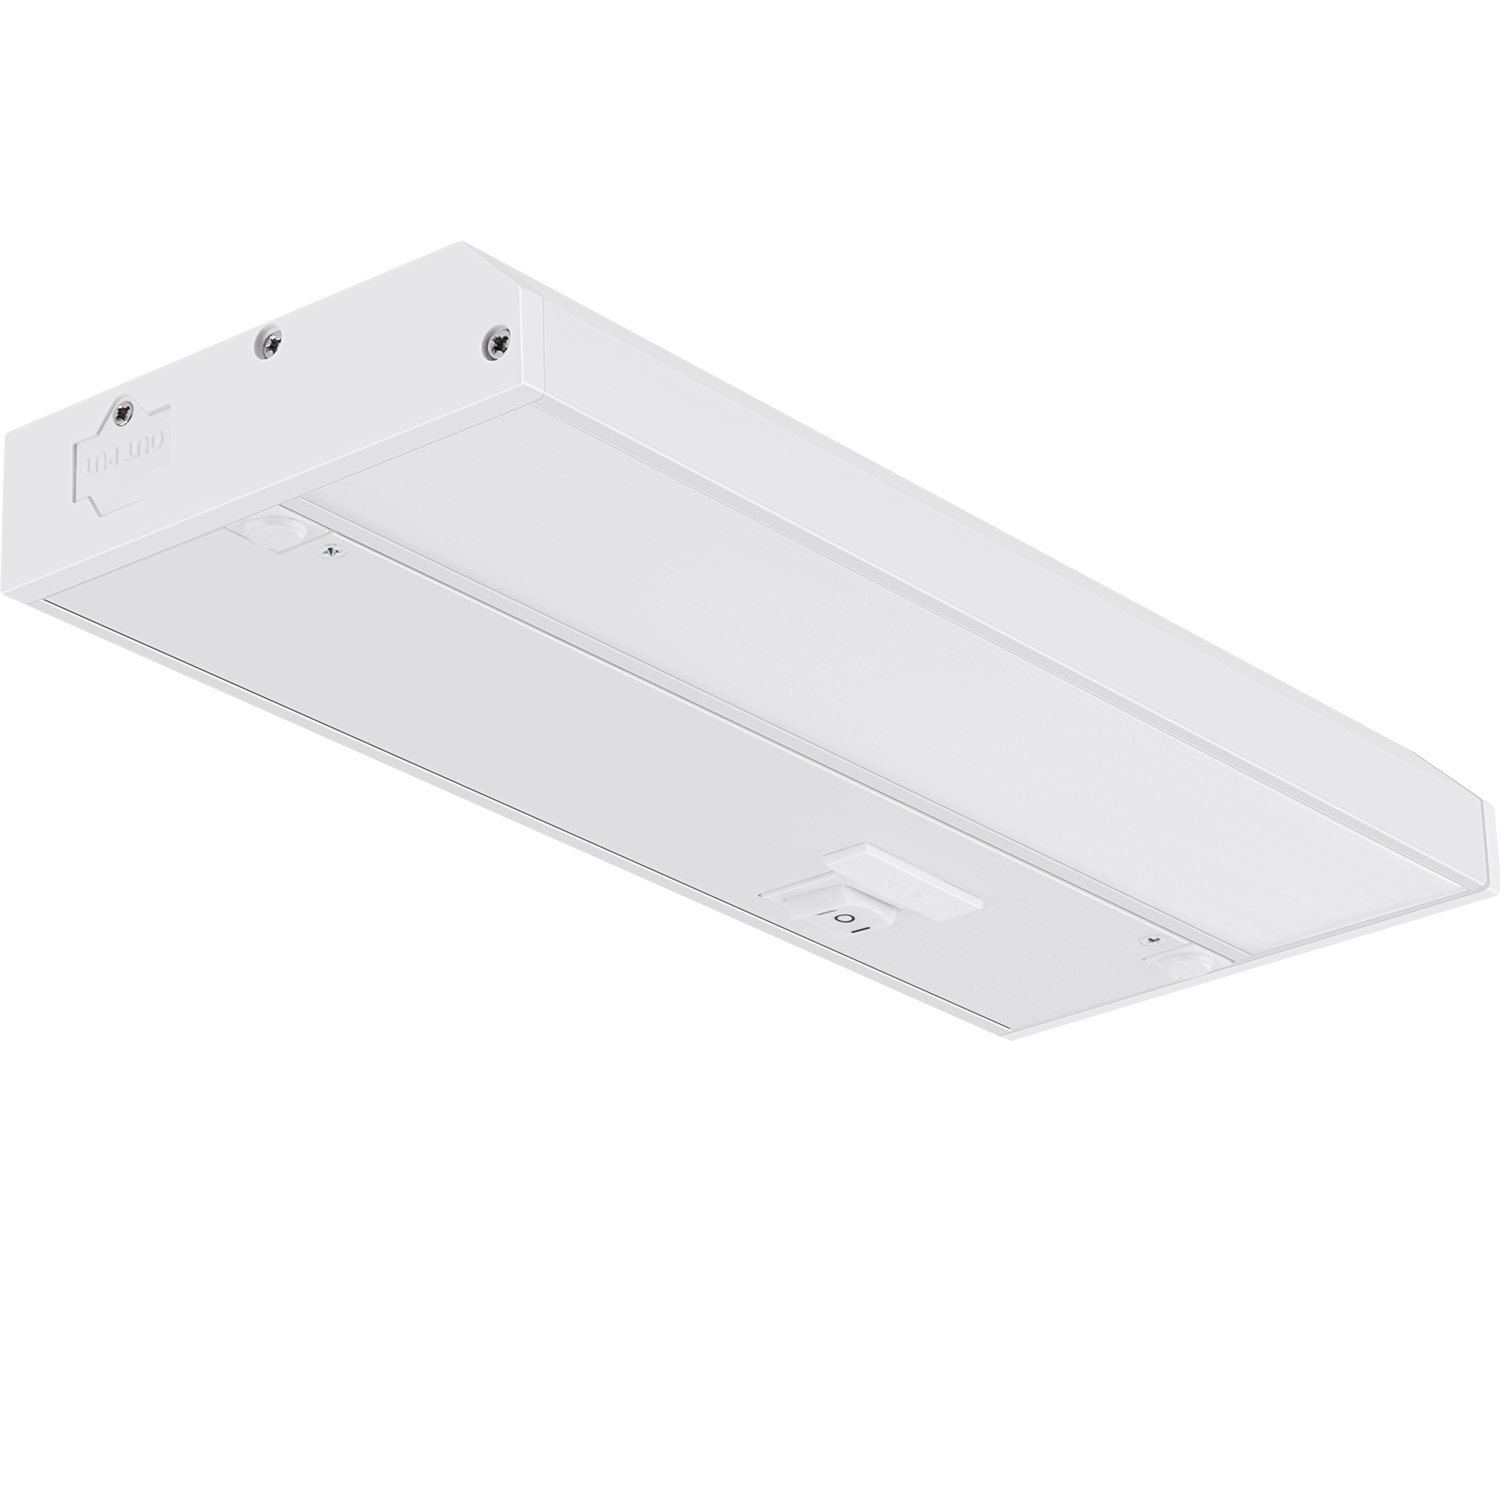 GetInLight 3 Color Levels Dimmable LED Under Cabinet Lighting with ETL Listed, Warm White (2700K), Soft White (3000K), Bright White (4000K), White Finished, 9-inch, IN-0210-0